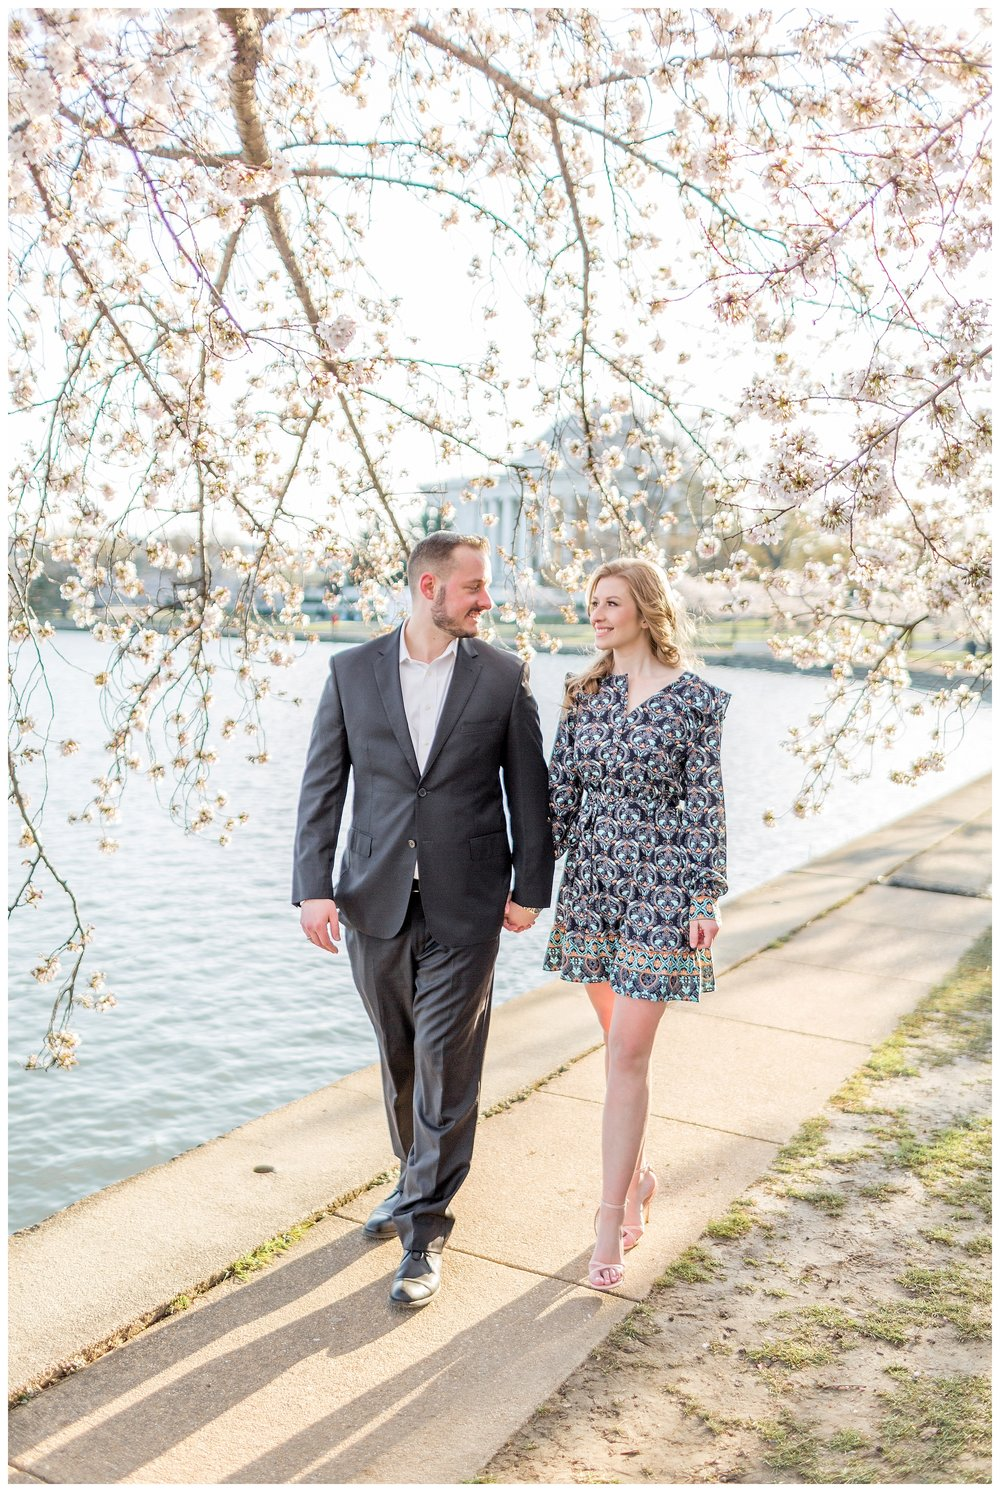 Cherry Blossom Engagement DC Wedding Photographer_0010.jpg